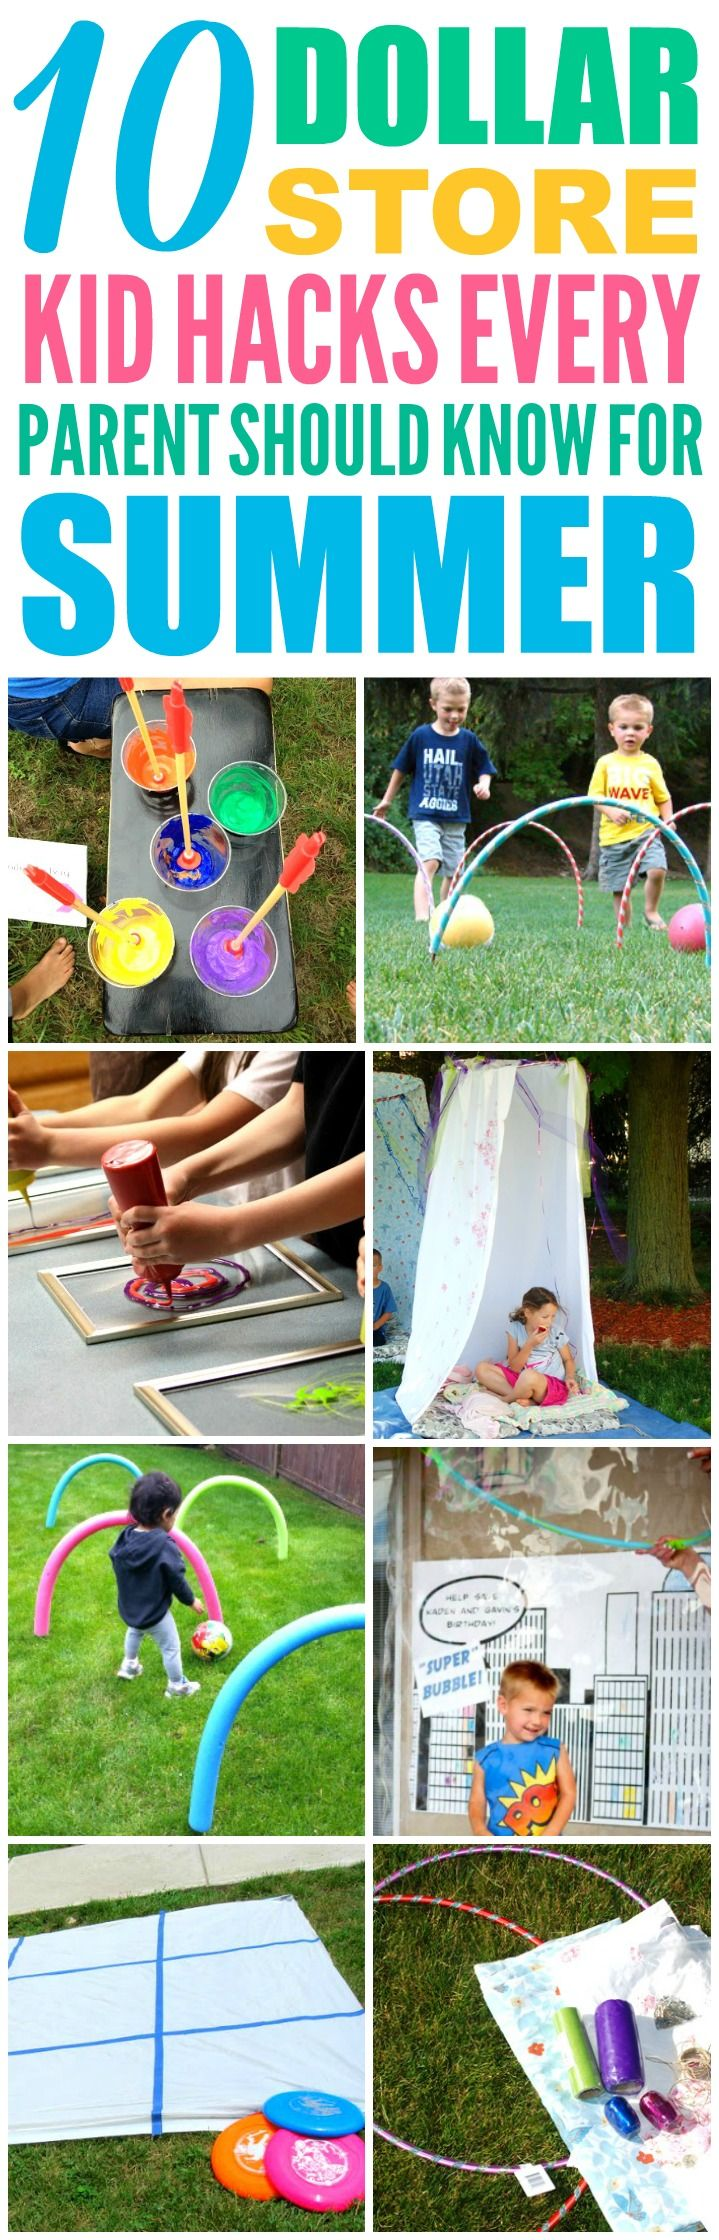 These 10 Dollar Store Hacks to Keep Your Kids Busy All Summer are THE BEST! I'm so glad I found these AWESOME summer activities for kids! Now I have some great ways to keep my kids off the computer and having fun this summer! Definitely pinning!